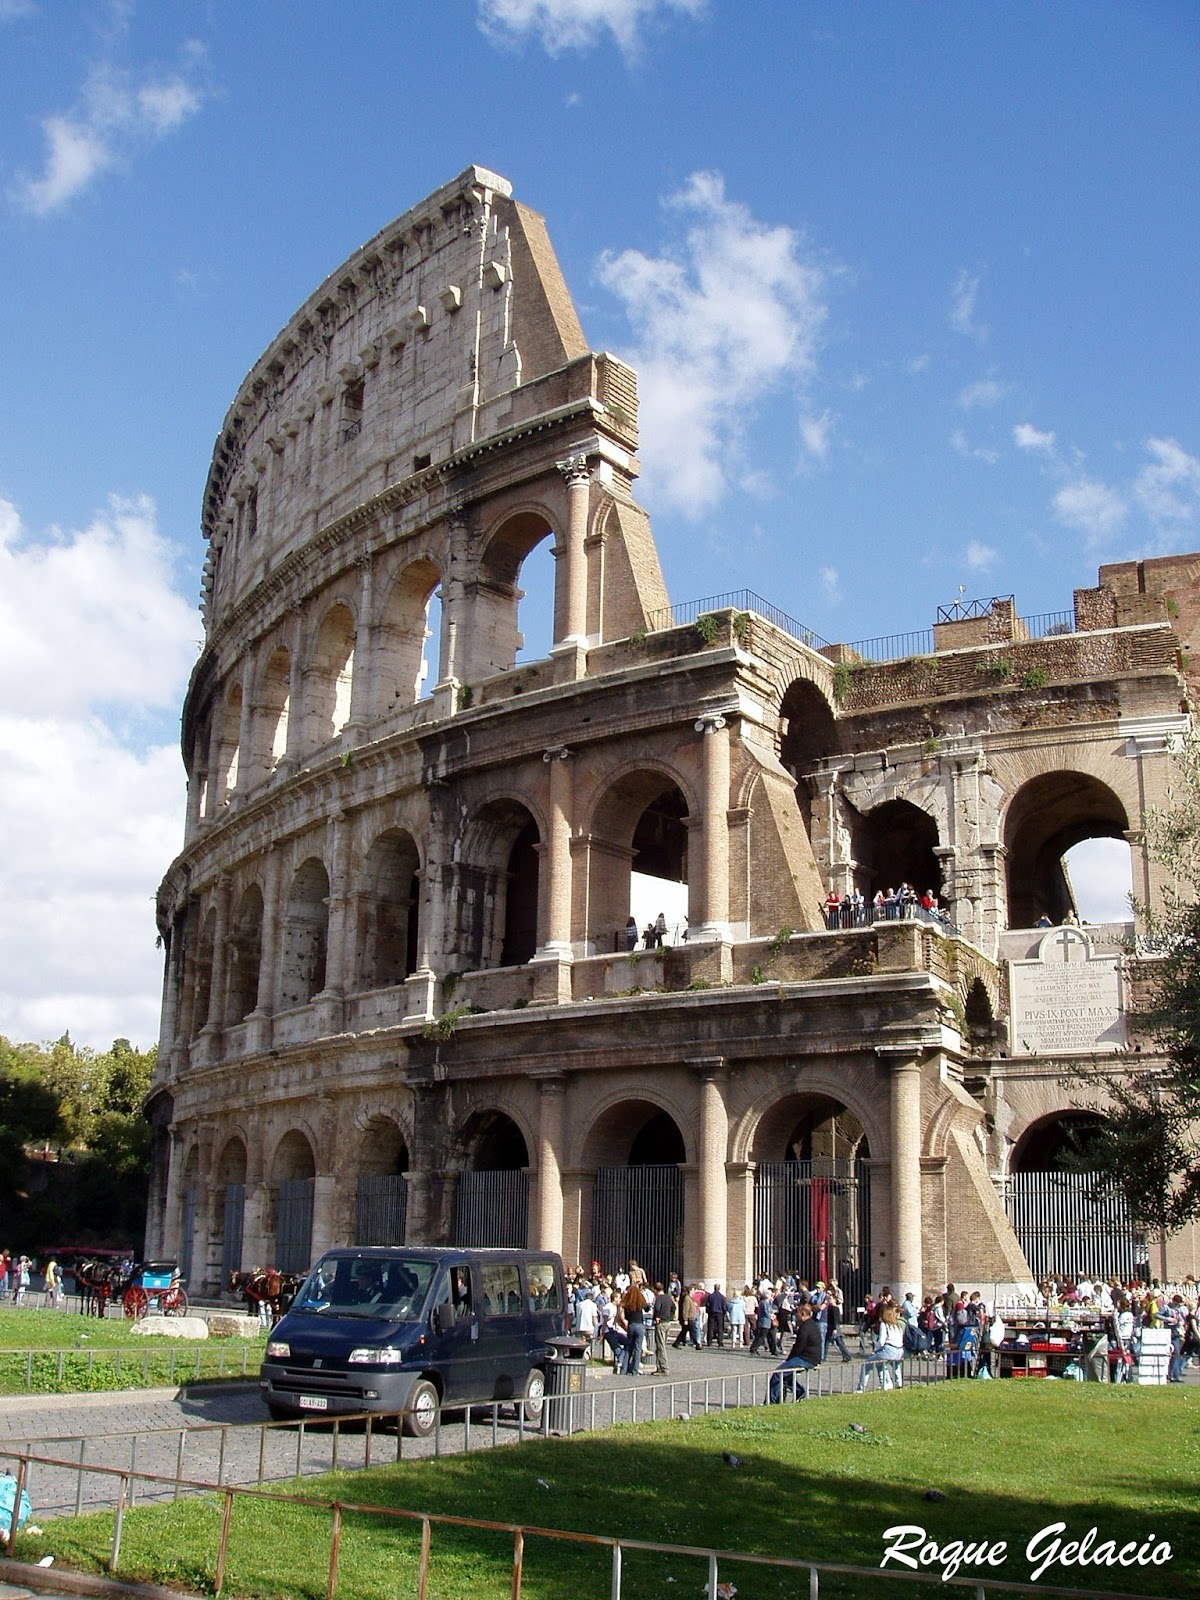 the role and importance of religion in rome Ancient rome was a society where a man's role was far more important than that of a woman's they had absolute authority over the family and in certain instances could even sell their children into slavery.